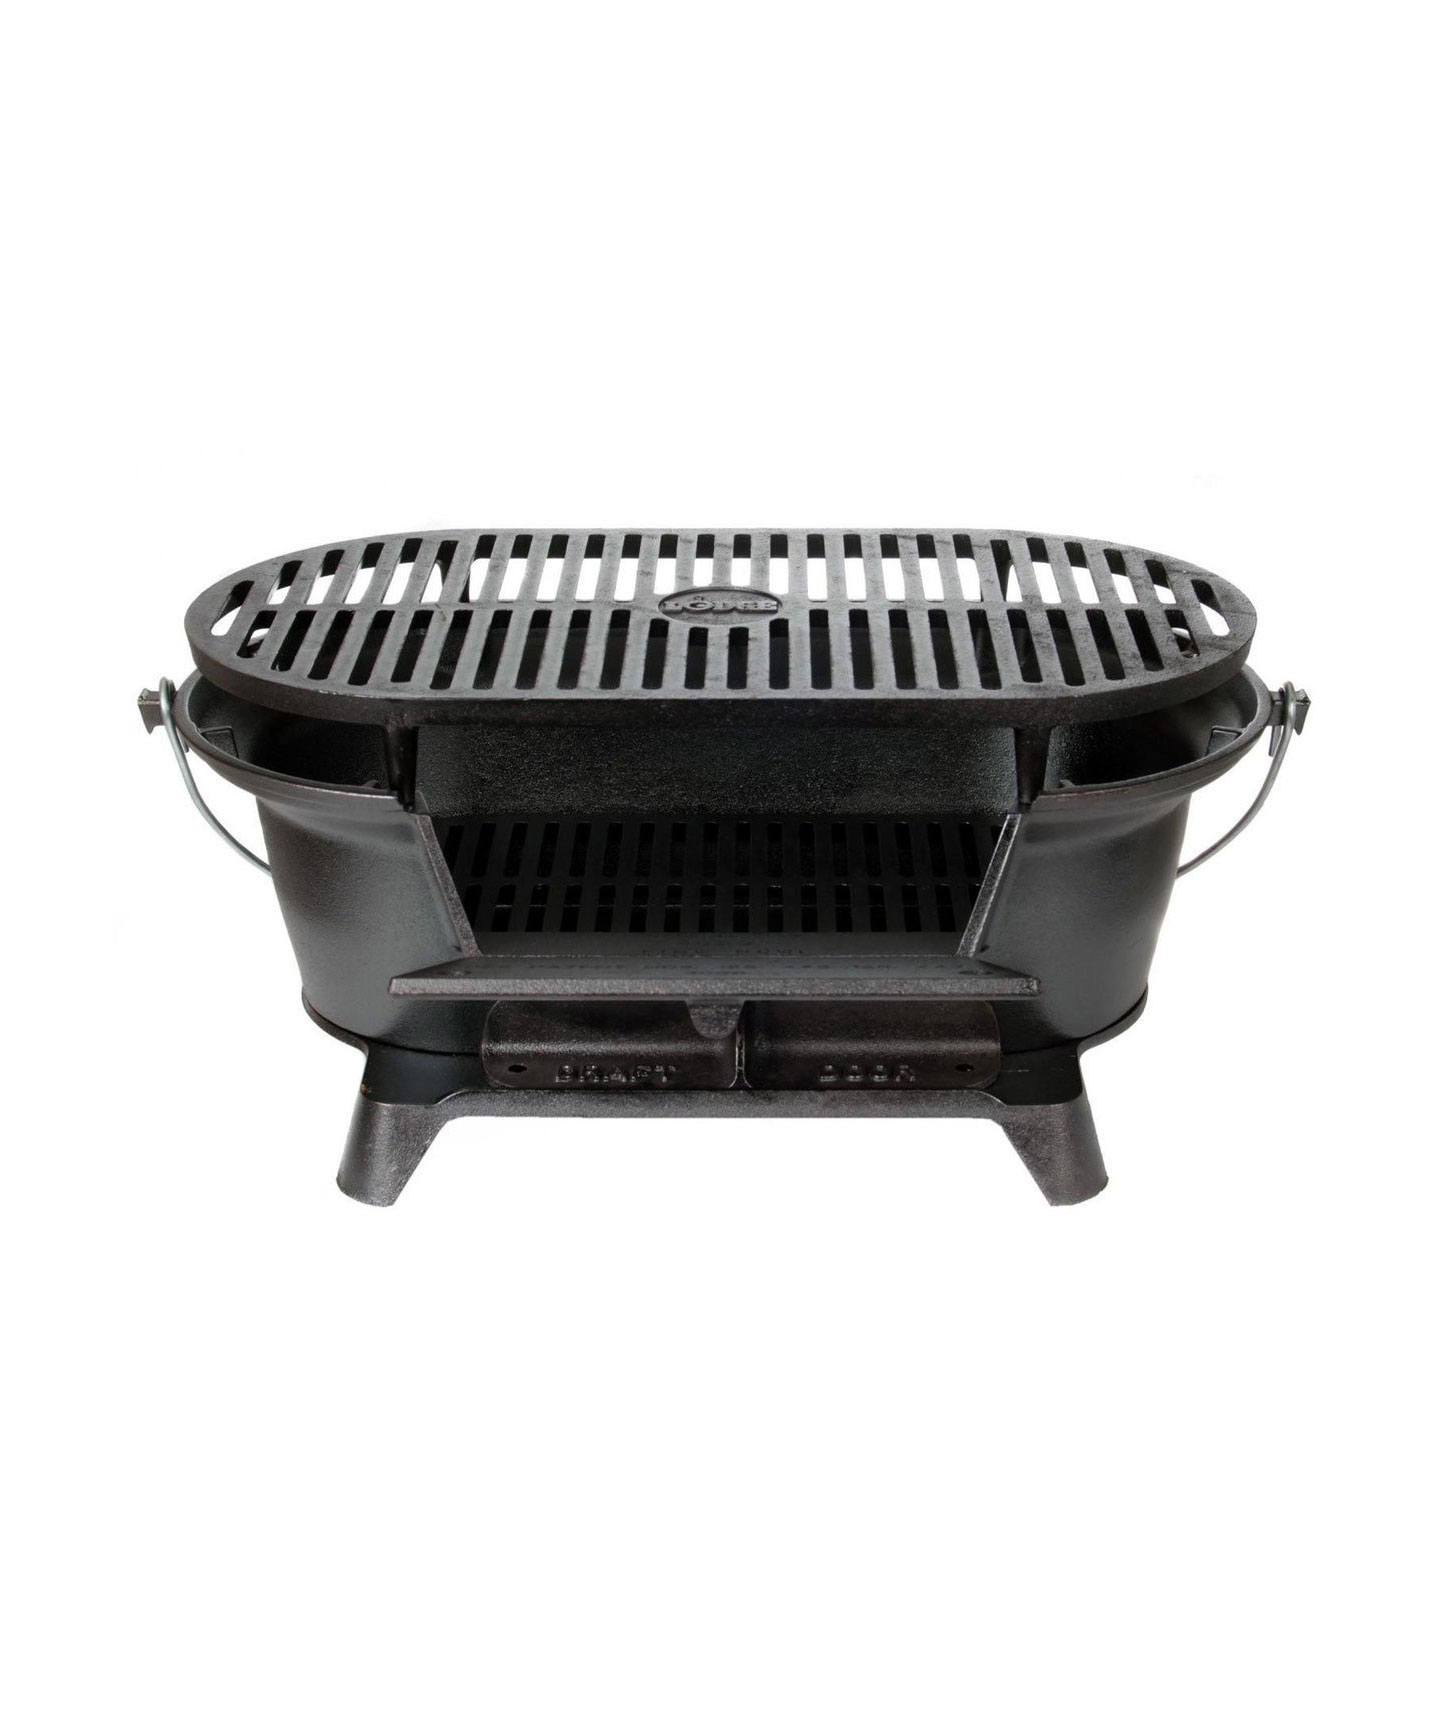 Lodge L410 Pre-Seasoned Sportsman's Charcoal Grill